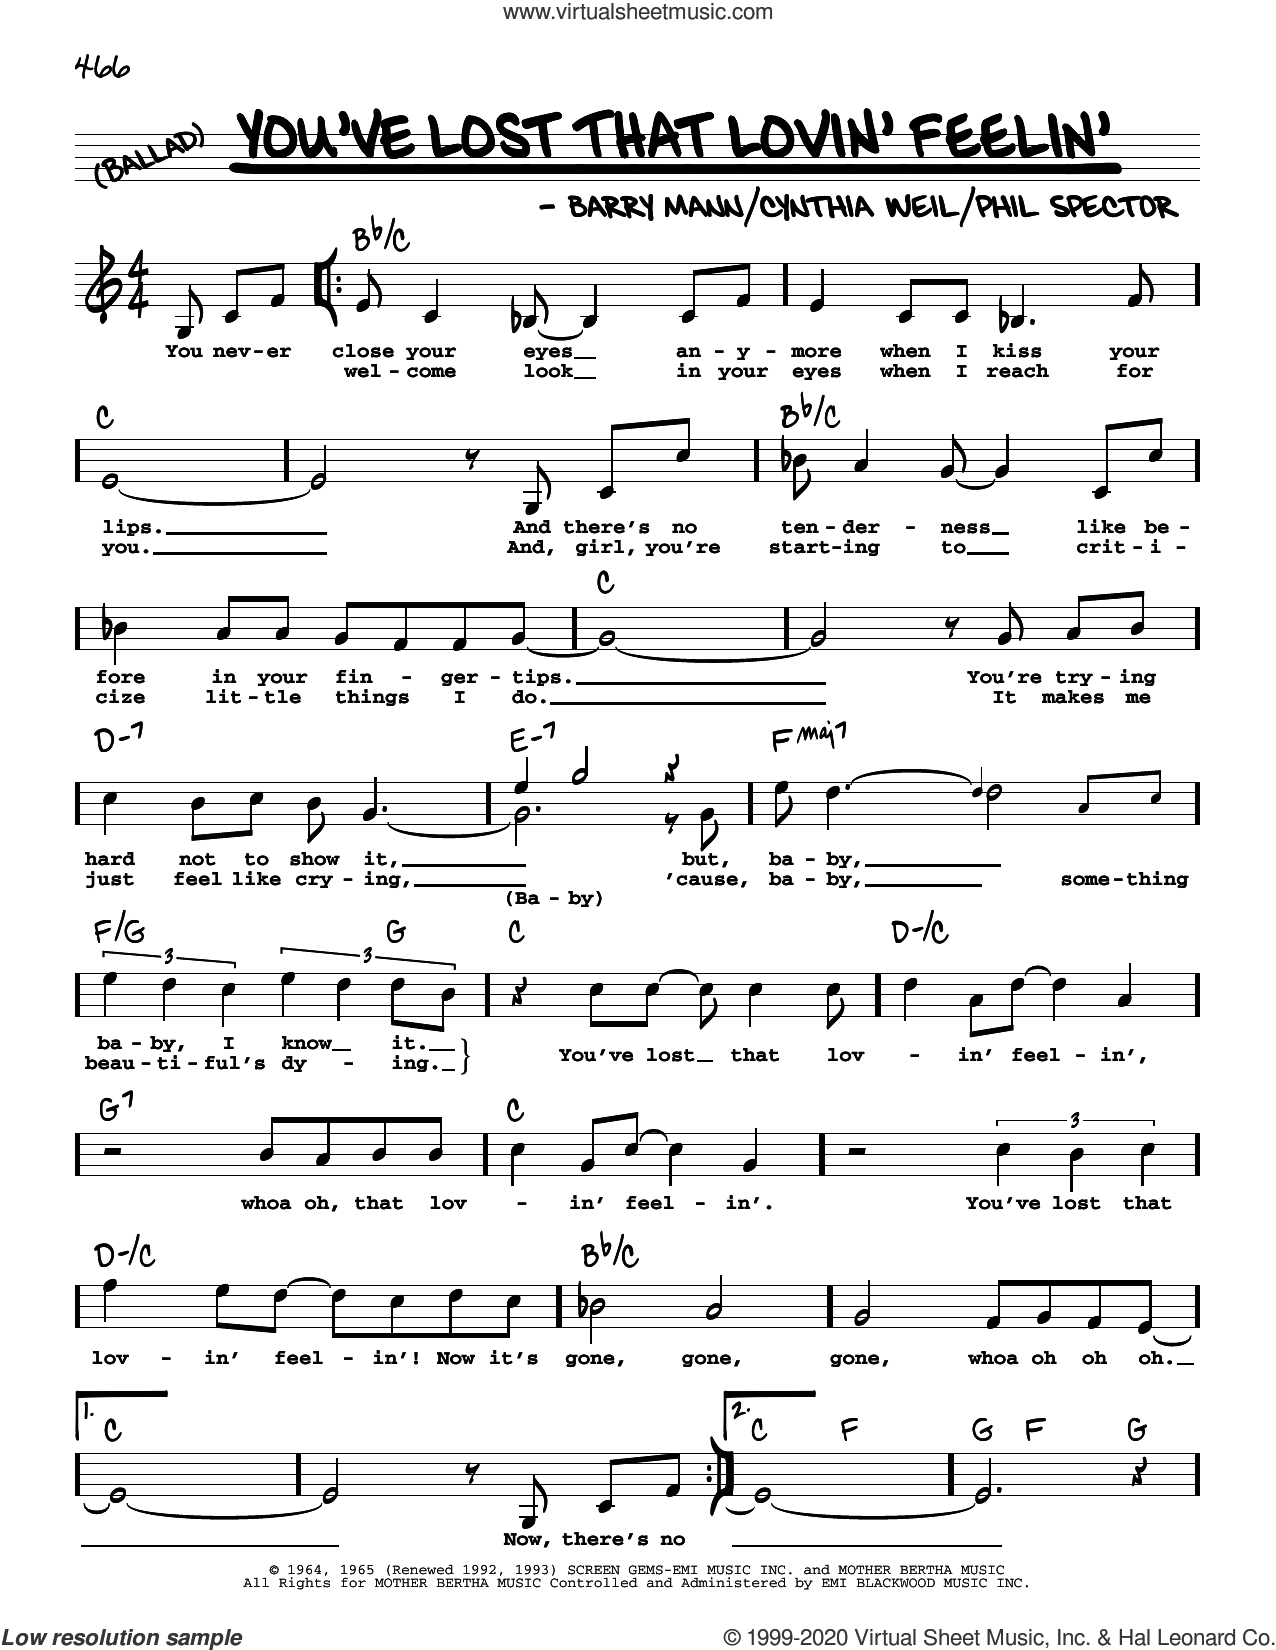 You've Lost That Lovin' Feelin' (High Voice) sheet music for voice and other instruments (high voice) by The Righteous Brothers, Elvis Presley, Barry Mann, Cynthia Weil and Phil Spector, intermediate skill level